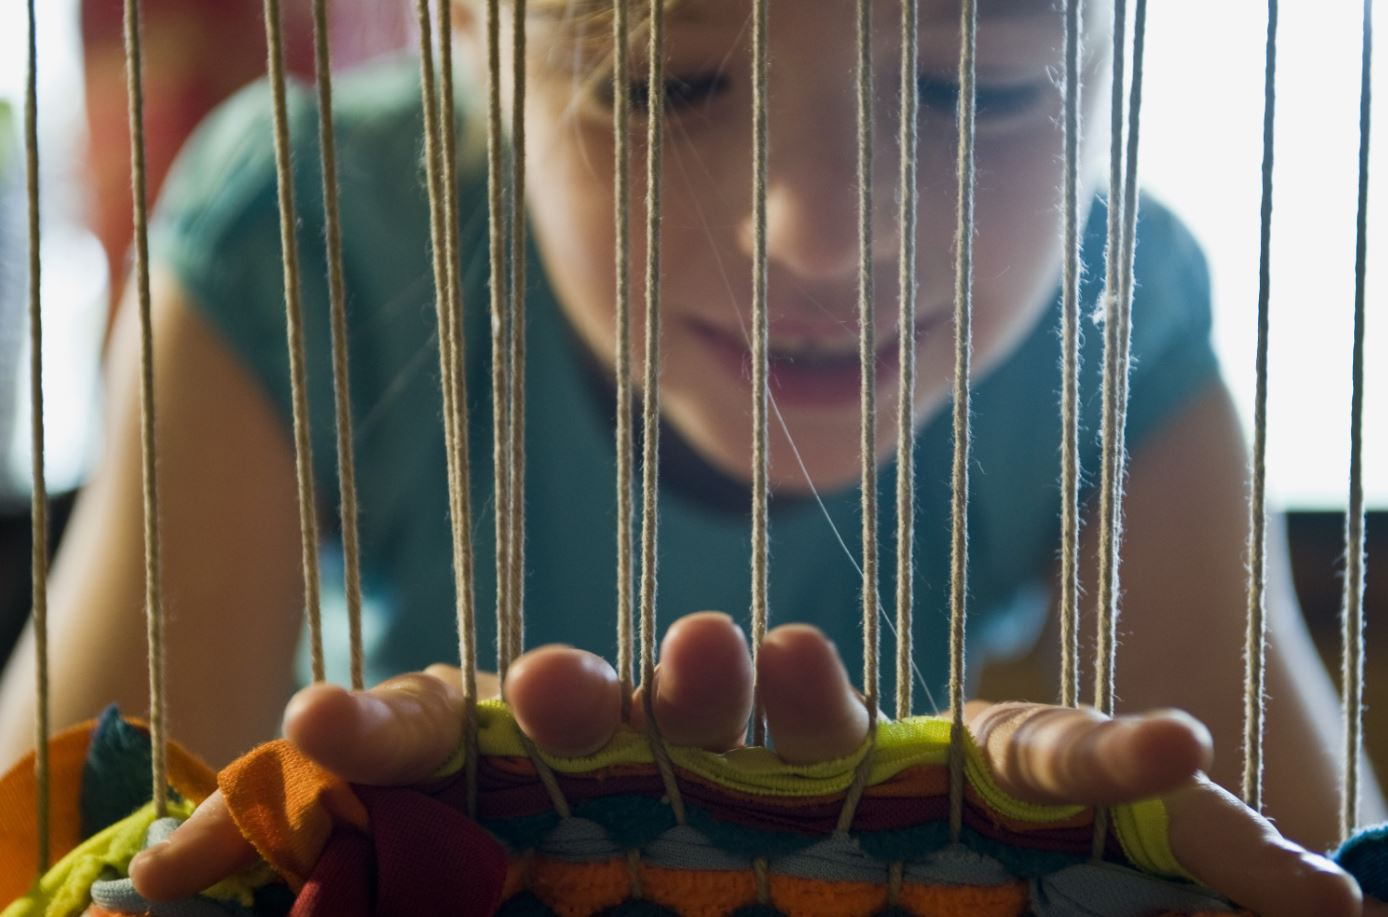 https://www.basingstokefestival.co.uk/wp-content/uploads/2019/05/The-Vyne-weaving.jpg